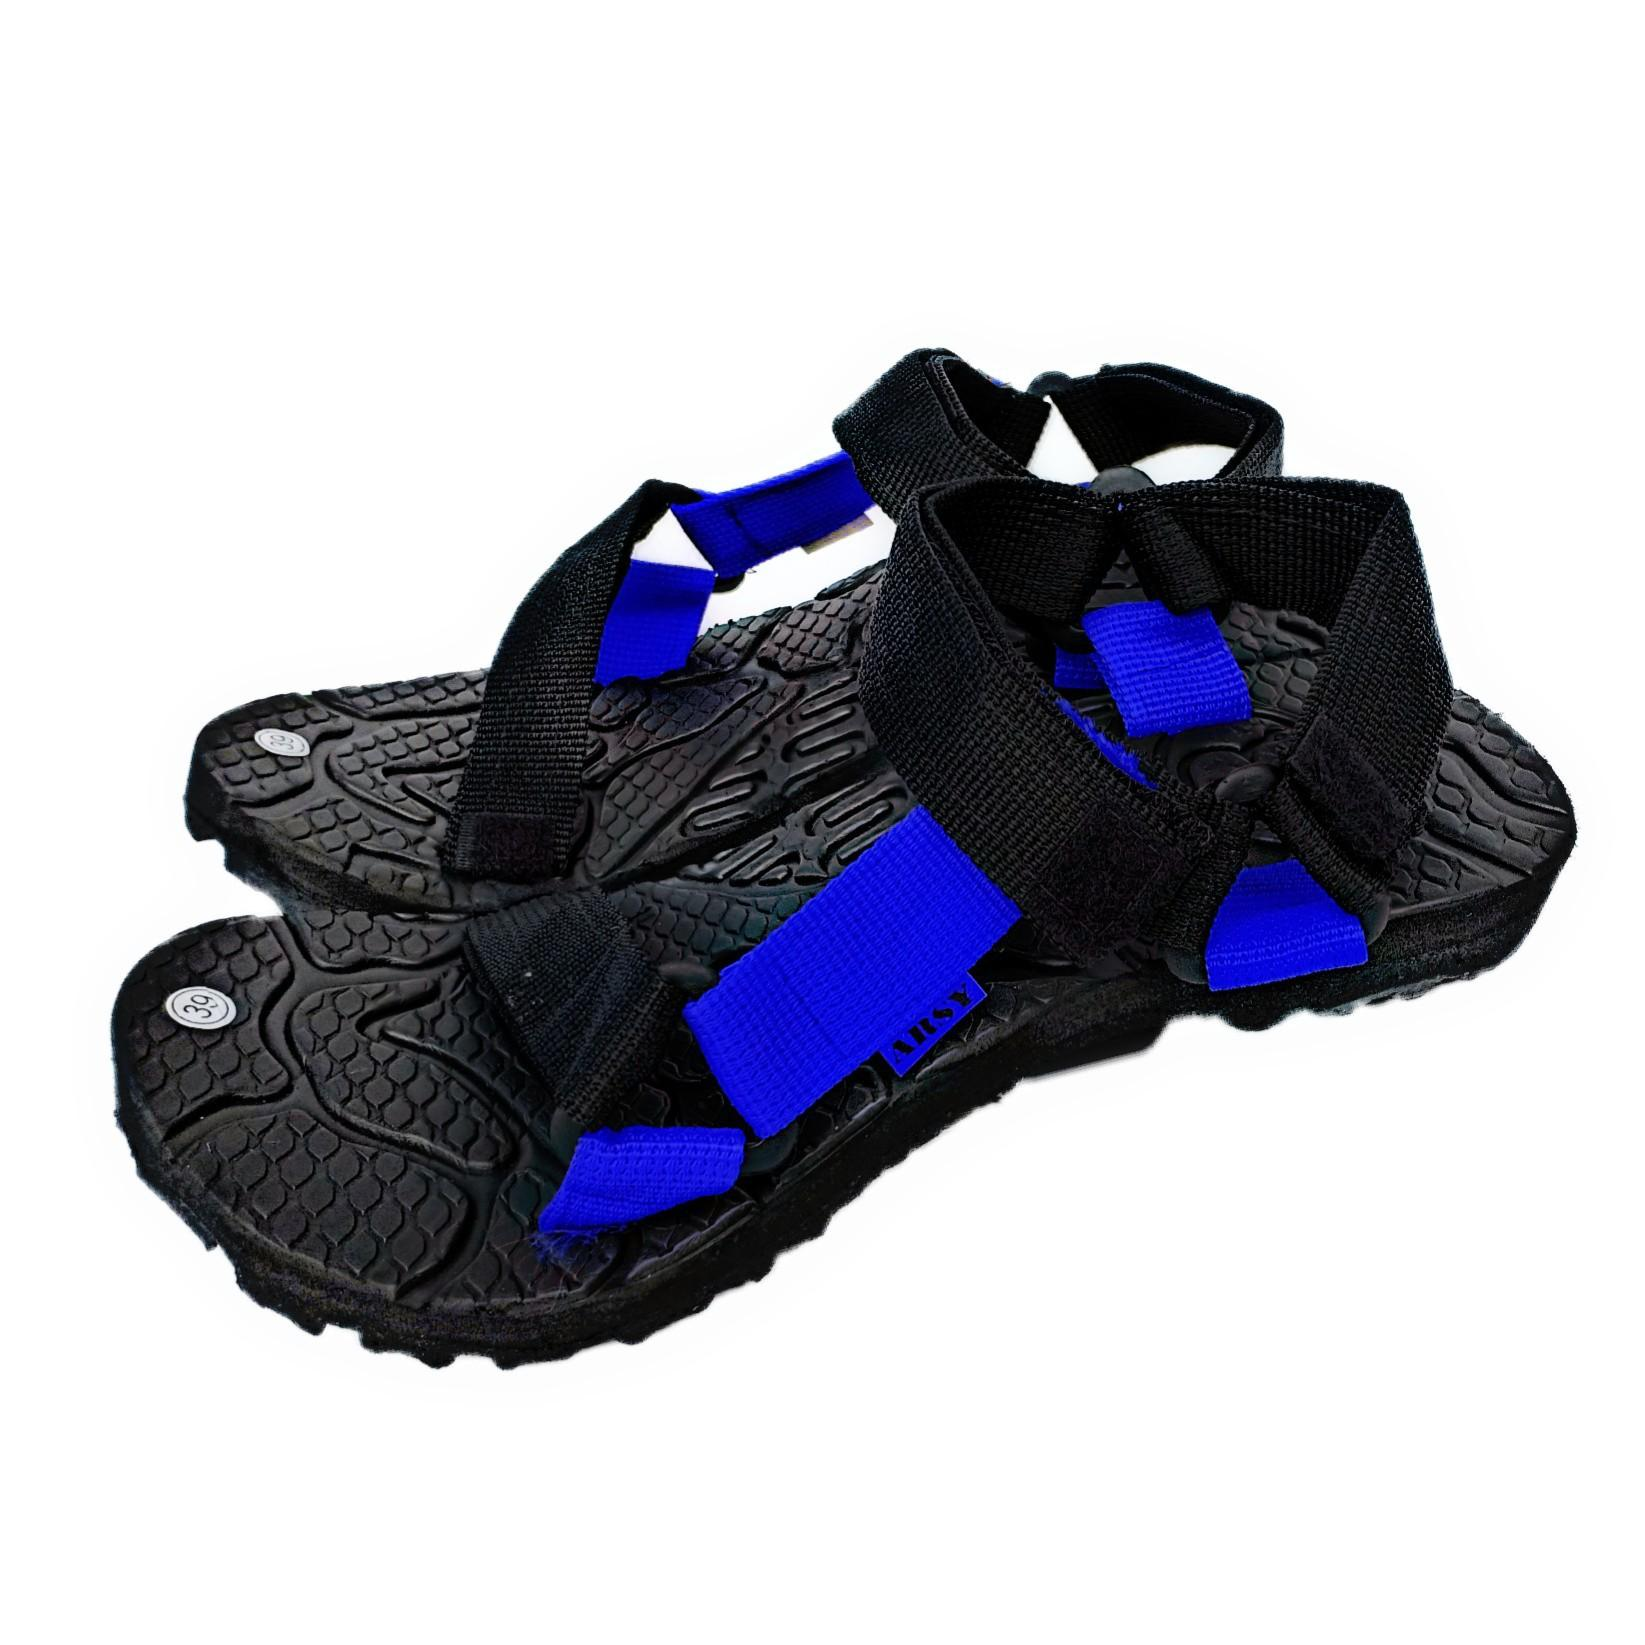 arsy collections sandal gunung pria selop - hitam 901c69498c